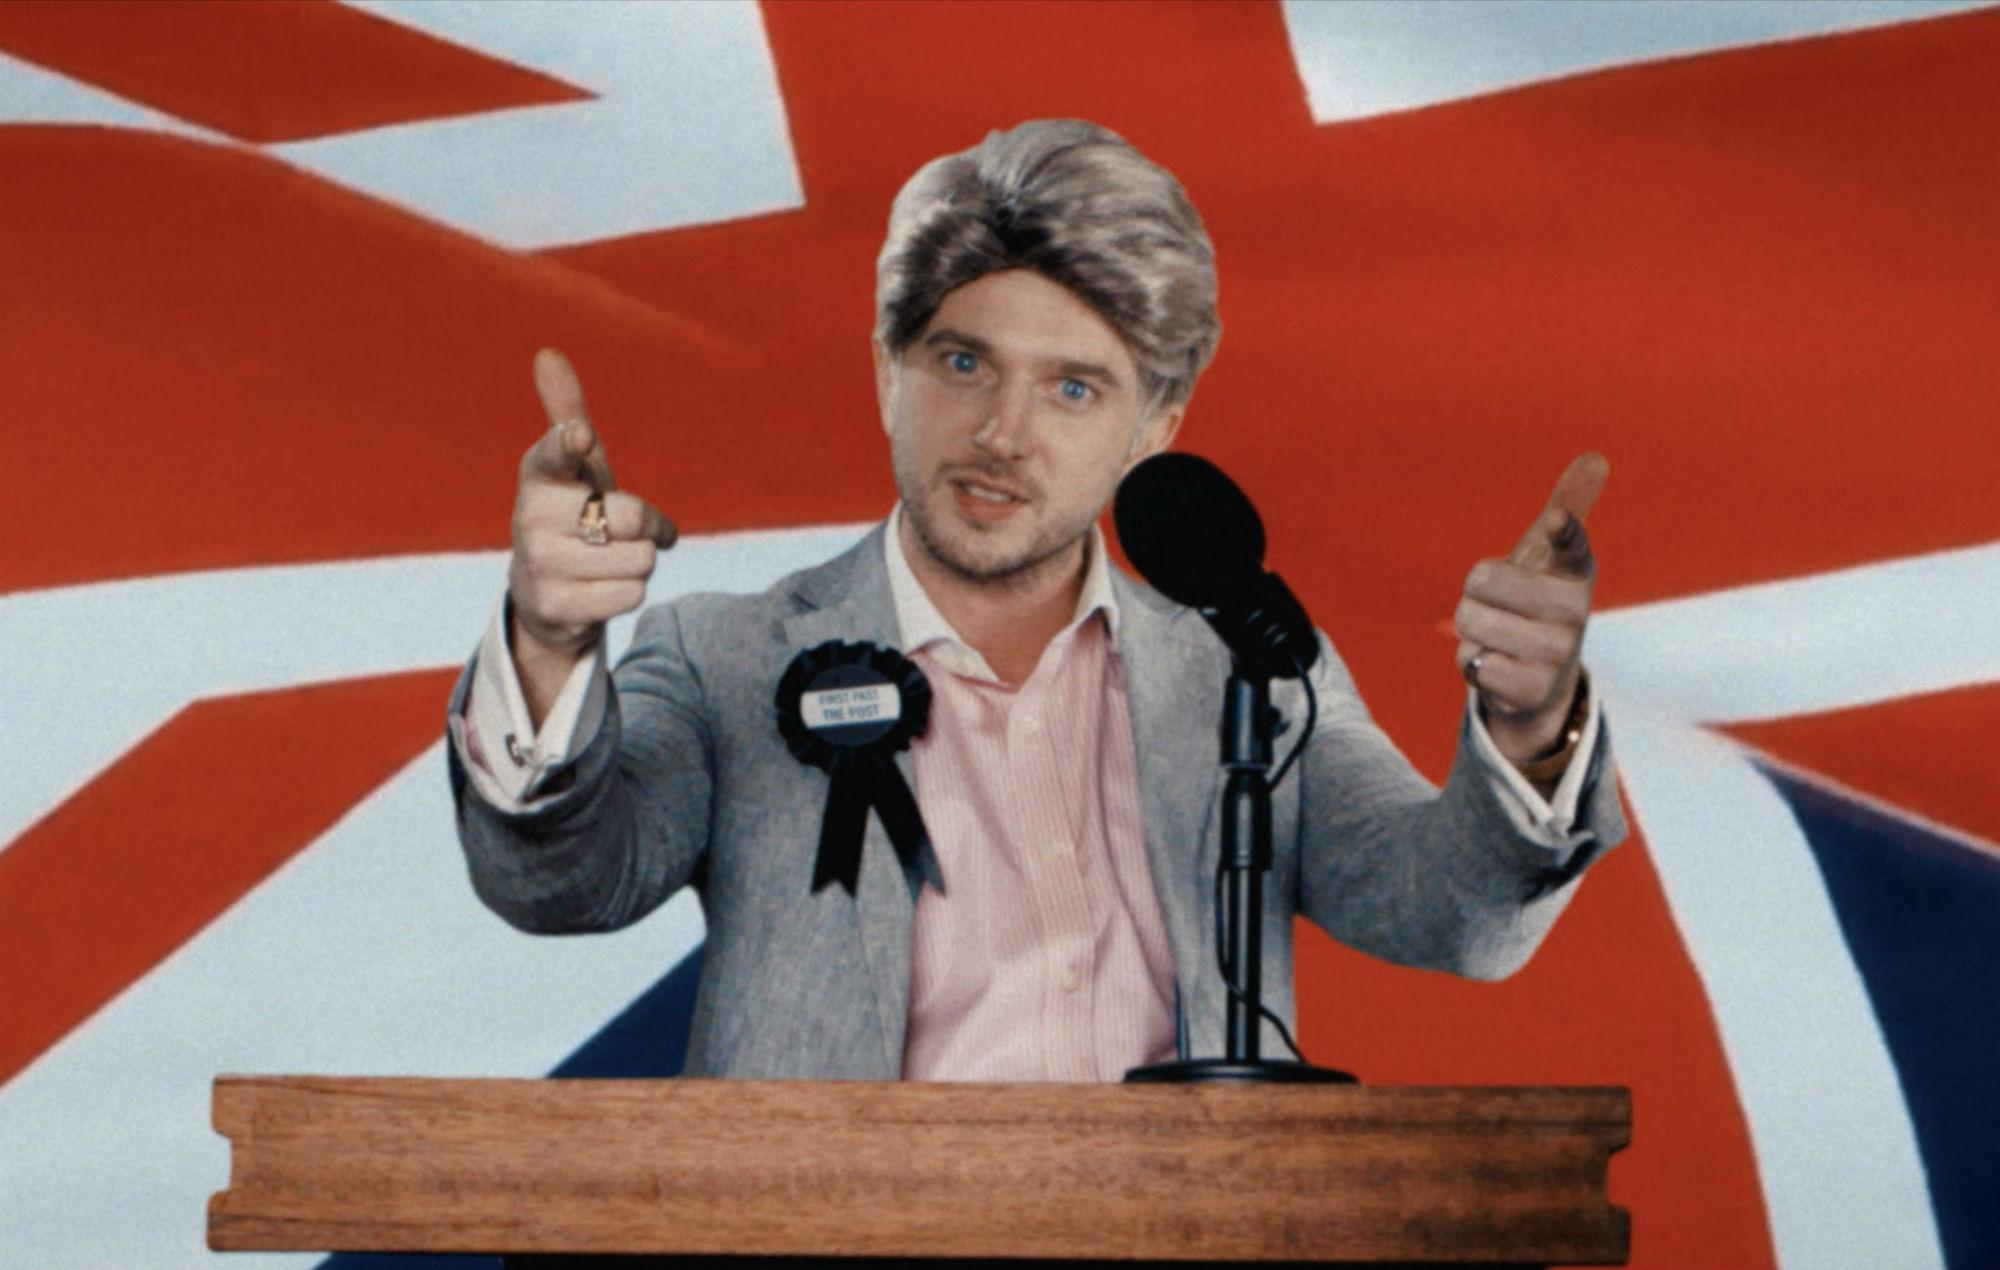 Watch Plan B advocate tactical voting in 'First Past The Post' parody video